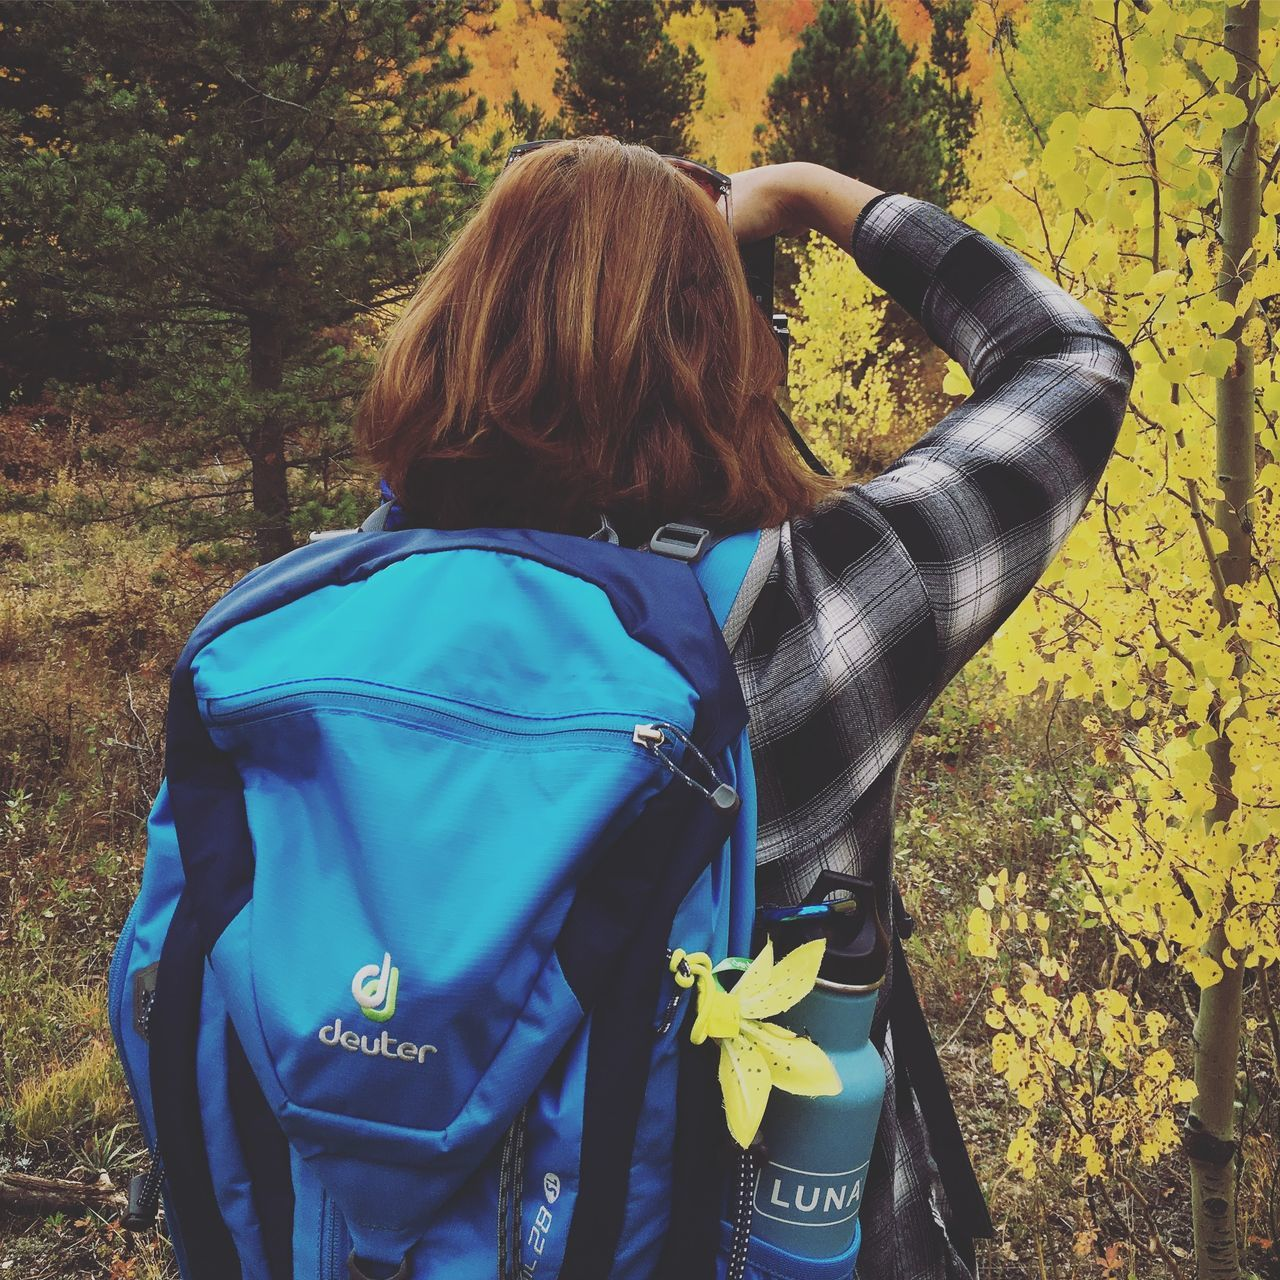 ©Amy Boyle Photography Backpack Casual Clothing Day Forest Hiking Leisure Activity Lifestyles Nature One Person Outdoors People Photographer Real People Rear View Standing Tree Women Young Adult Young Women